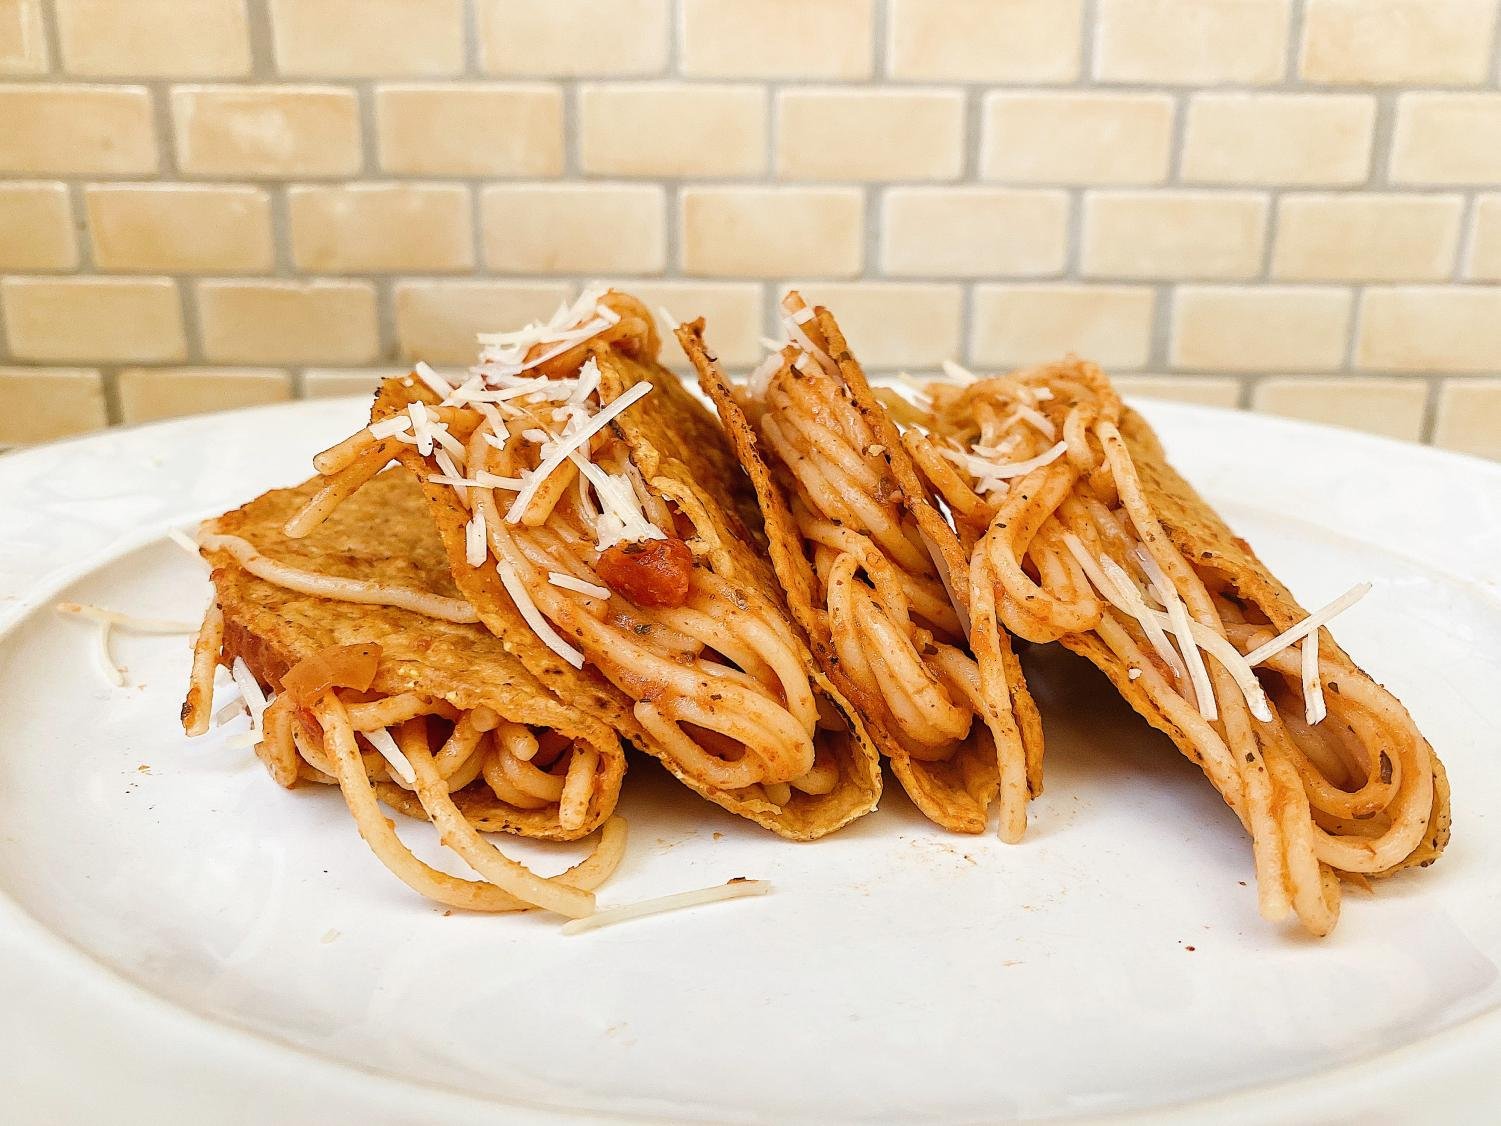 Spaghetti Tacos Remain Iconic The Spectrum